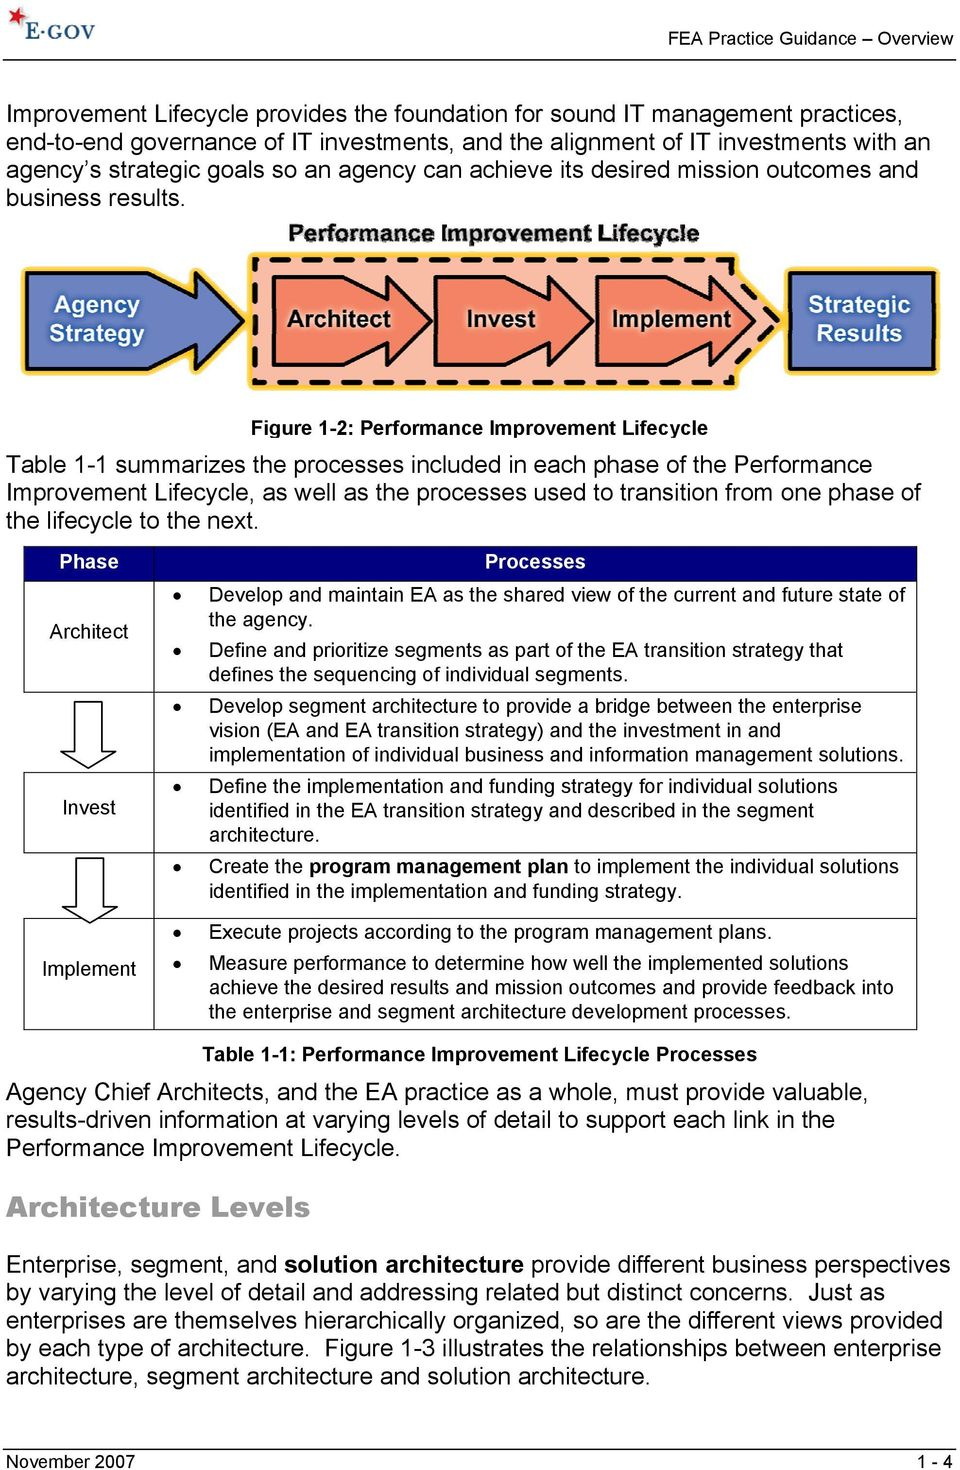 Figure 1-2: Performance Improvement Lifecycle Table 1-1 summarizes the processes included in each phase of the Performance Improvement Lifecycle, as well as the processes used to transition from one